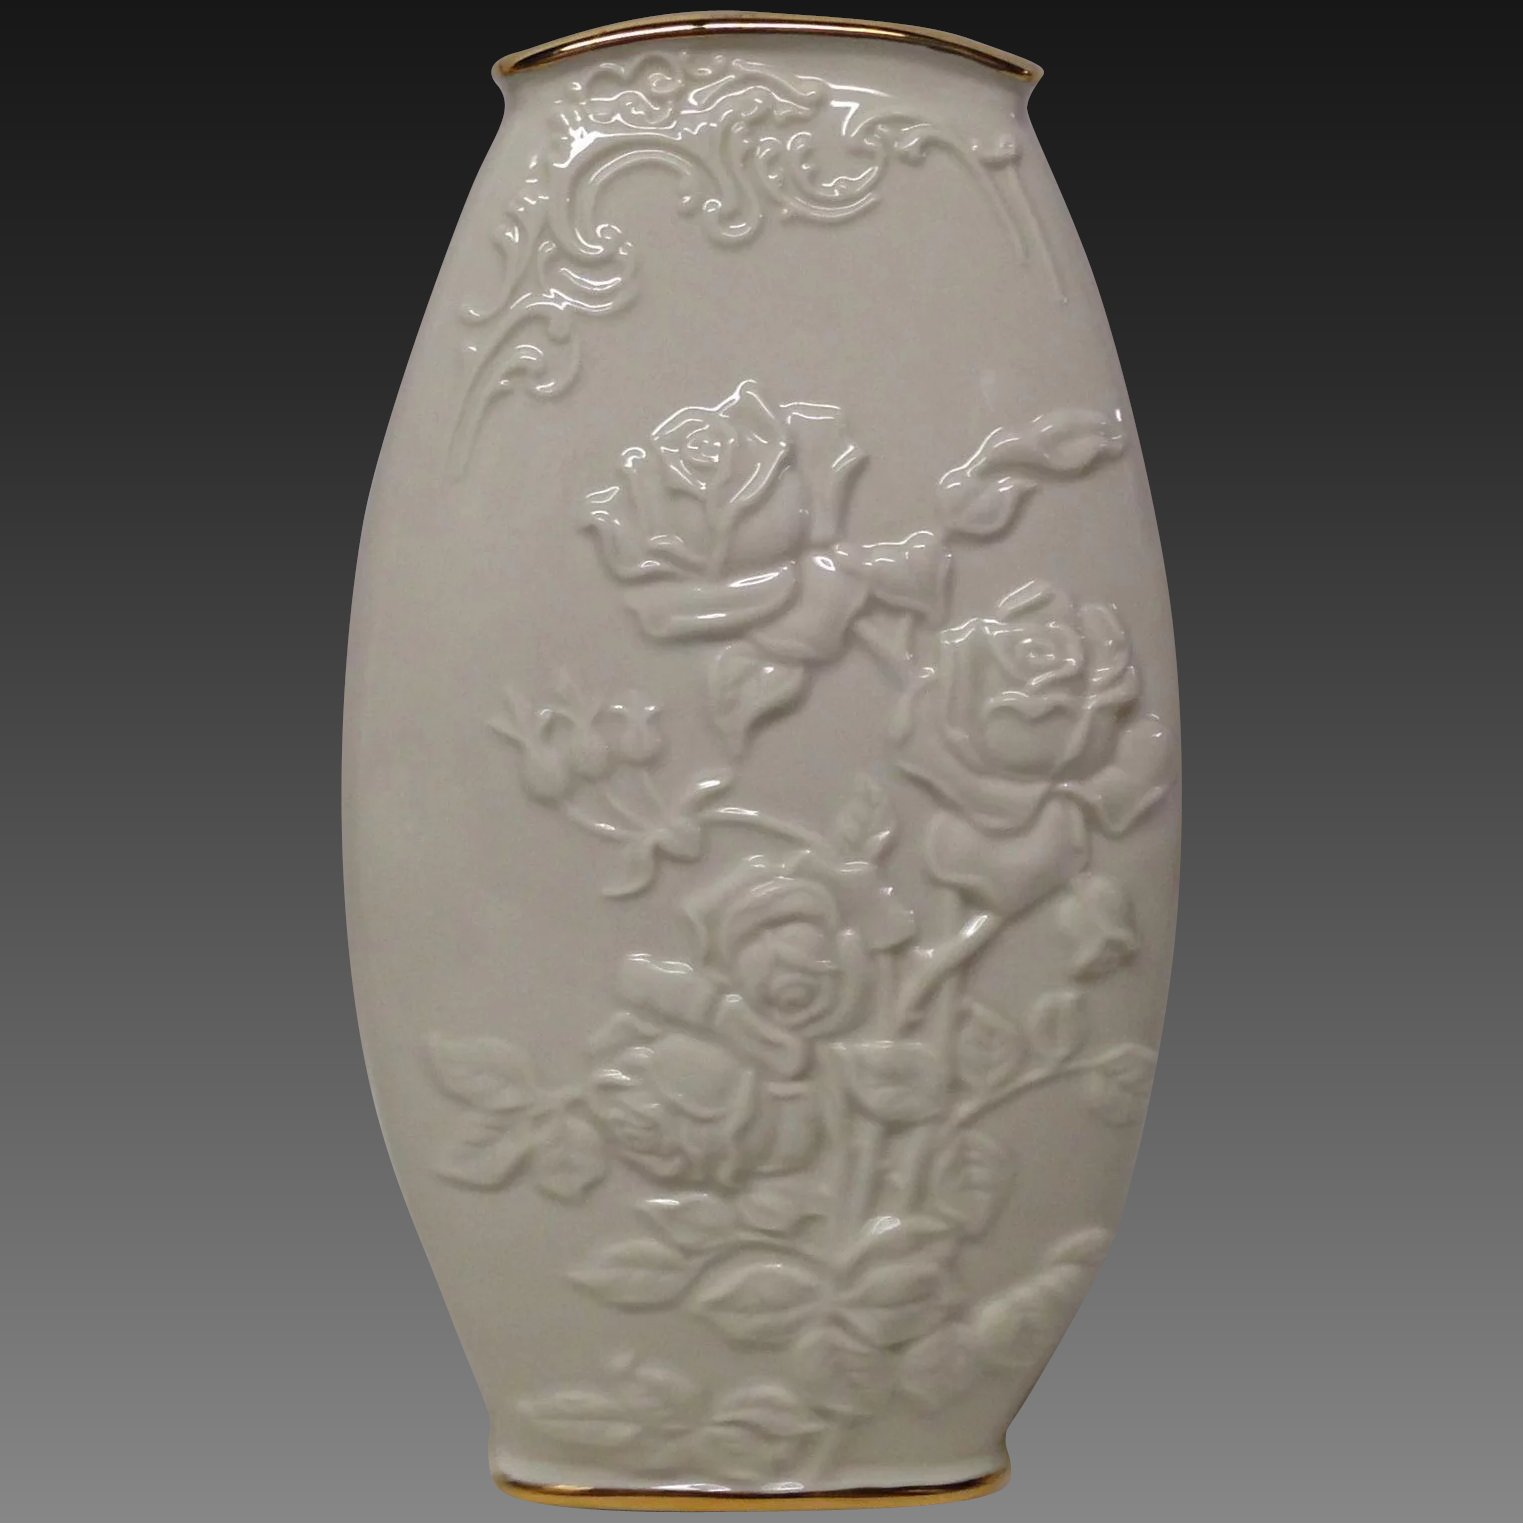 Lovely lenox vase with embossed roses and leaves grandview fine click to expand floridaeventfo Choice Image